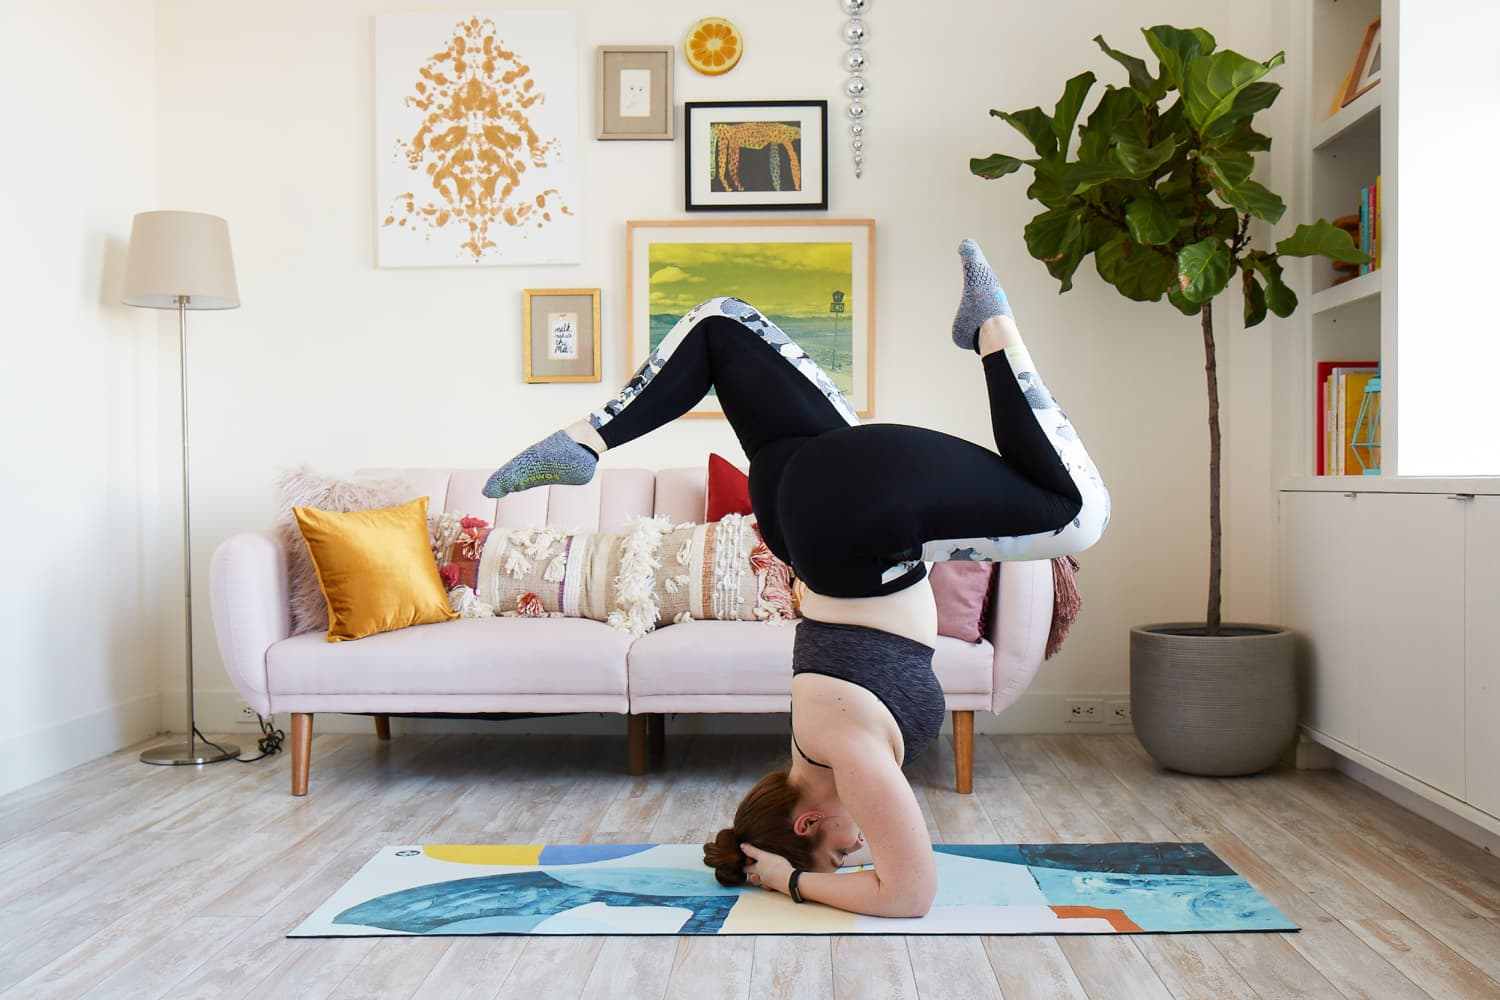 6 Wellness Trends that Could Take Over 2019